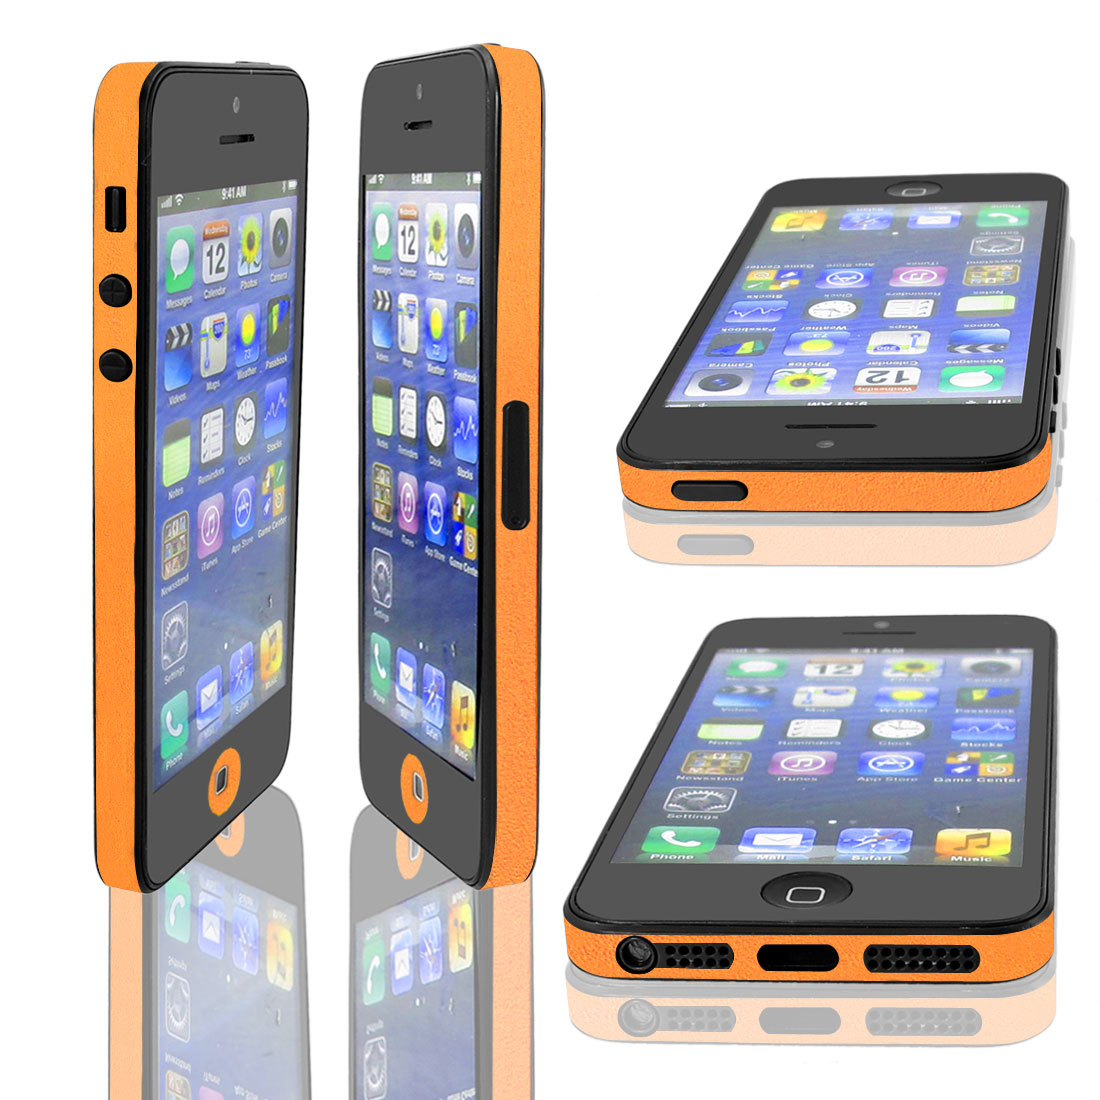 Orange Bumper Side Edge Skin Decal Sticker for Apple iPhone 5 5G 5TH